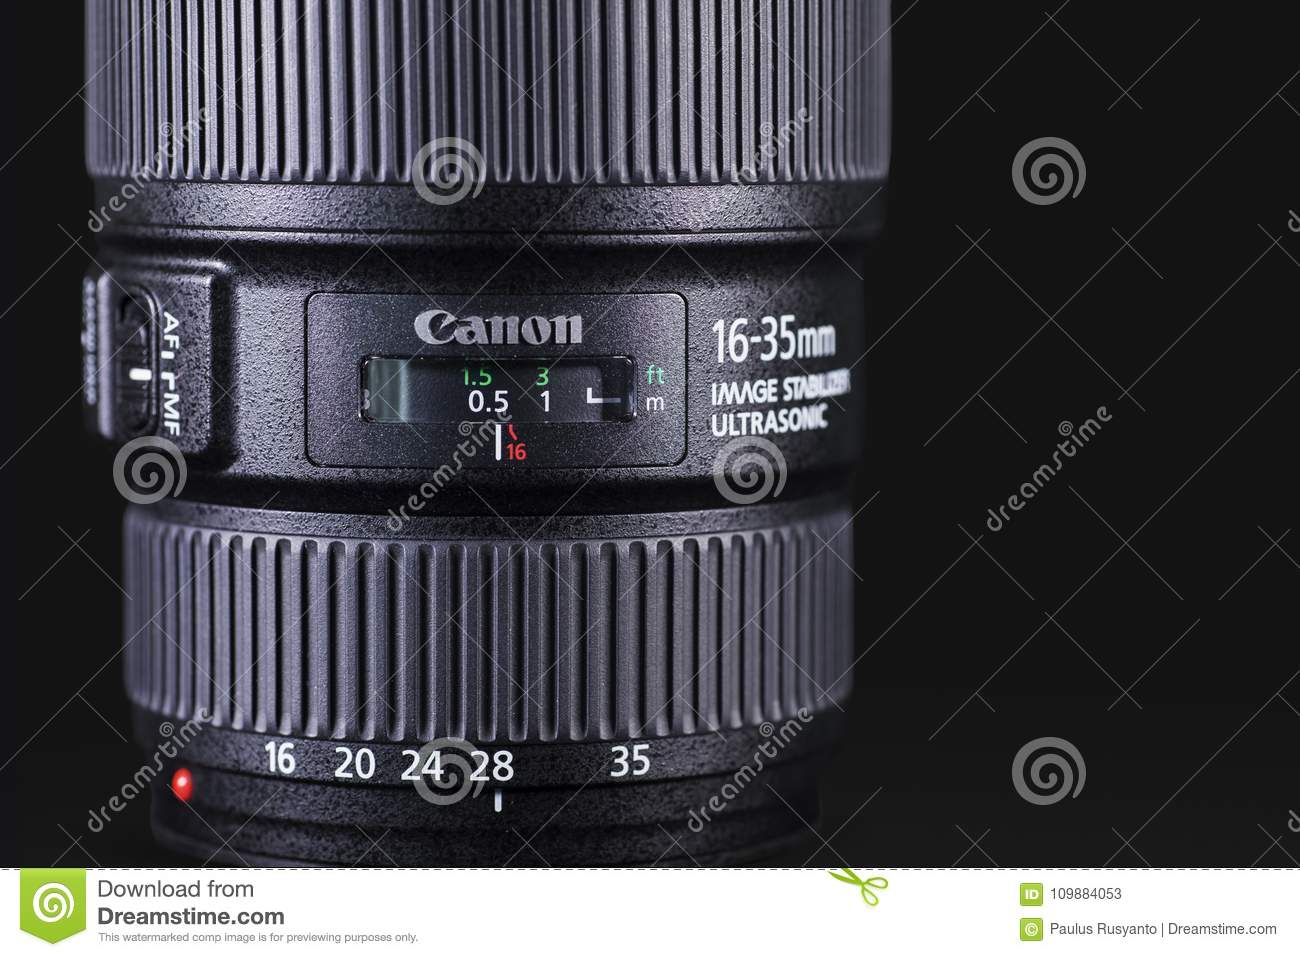 Canon 1635mm lens over donkere achtergrond